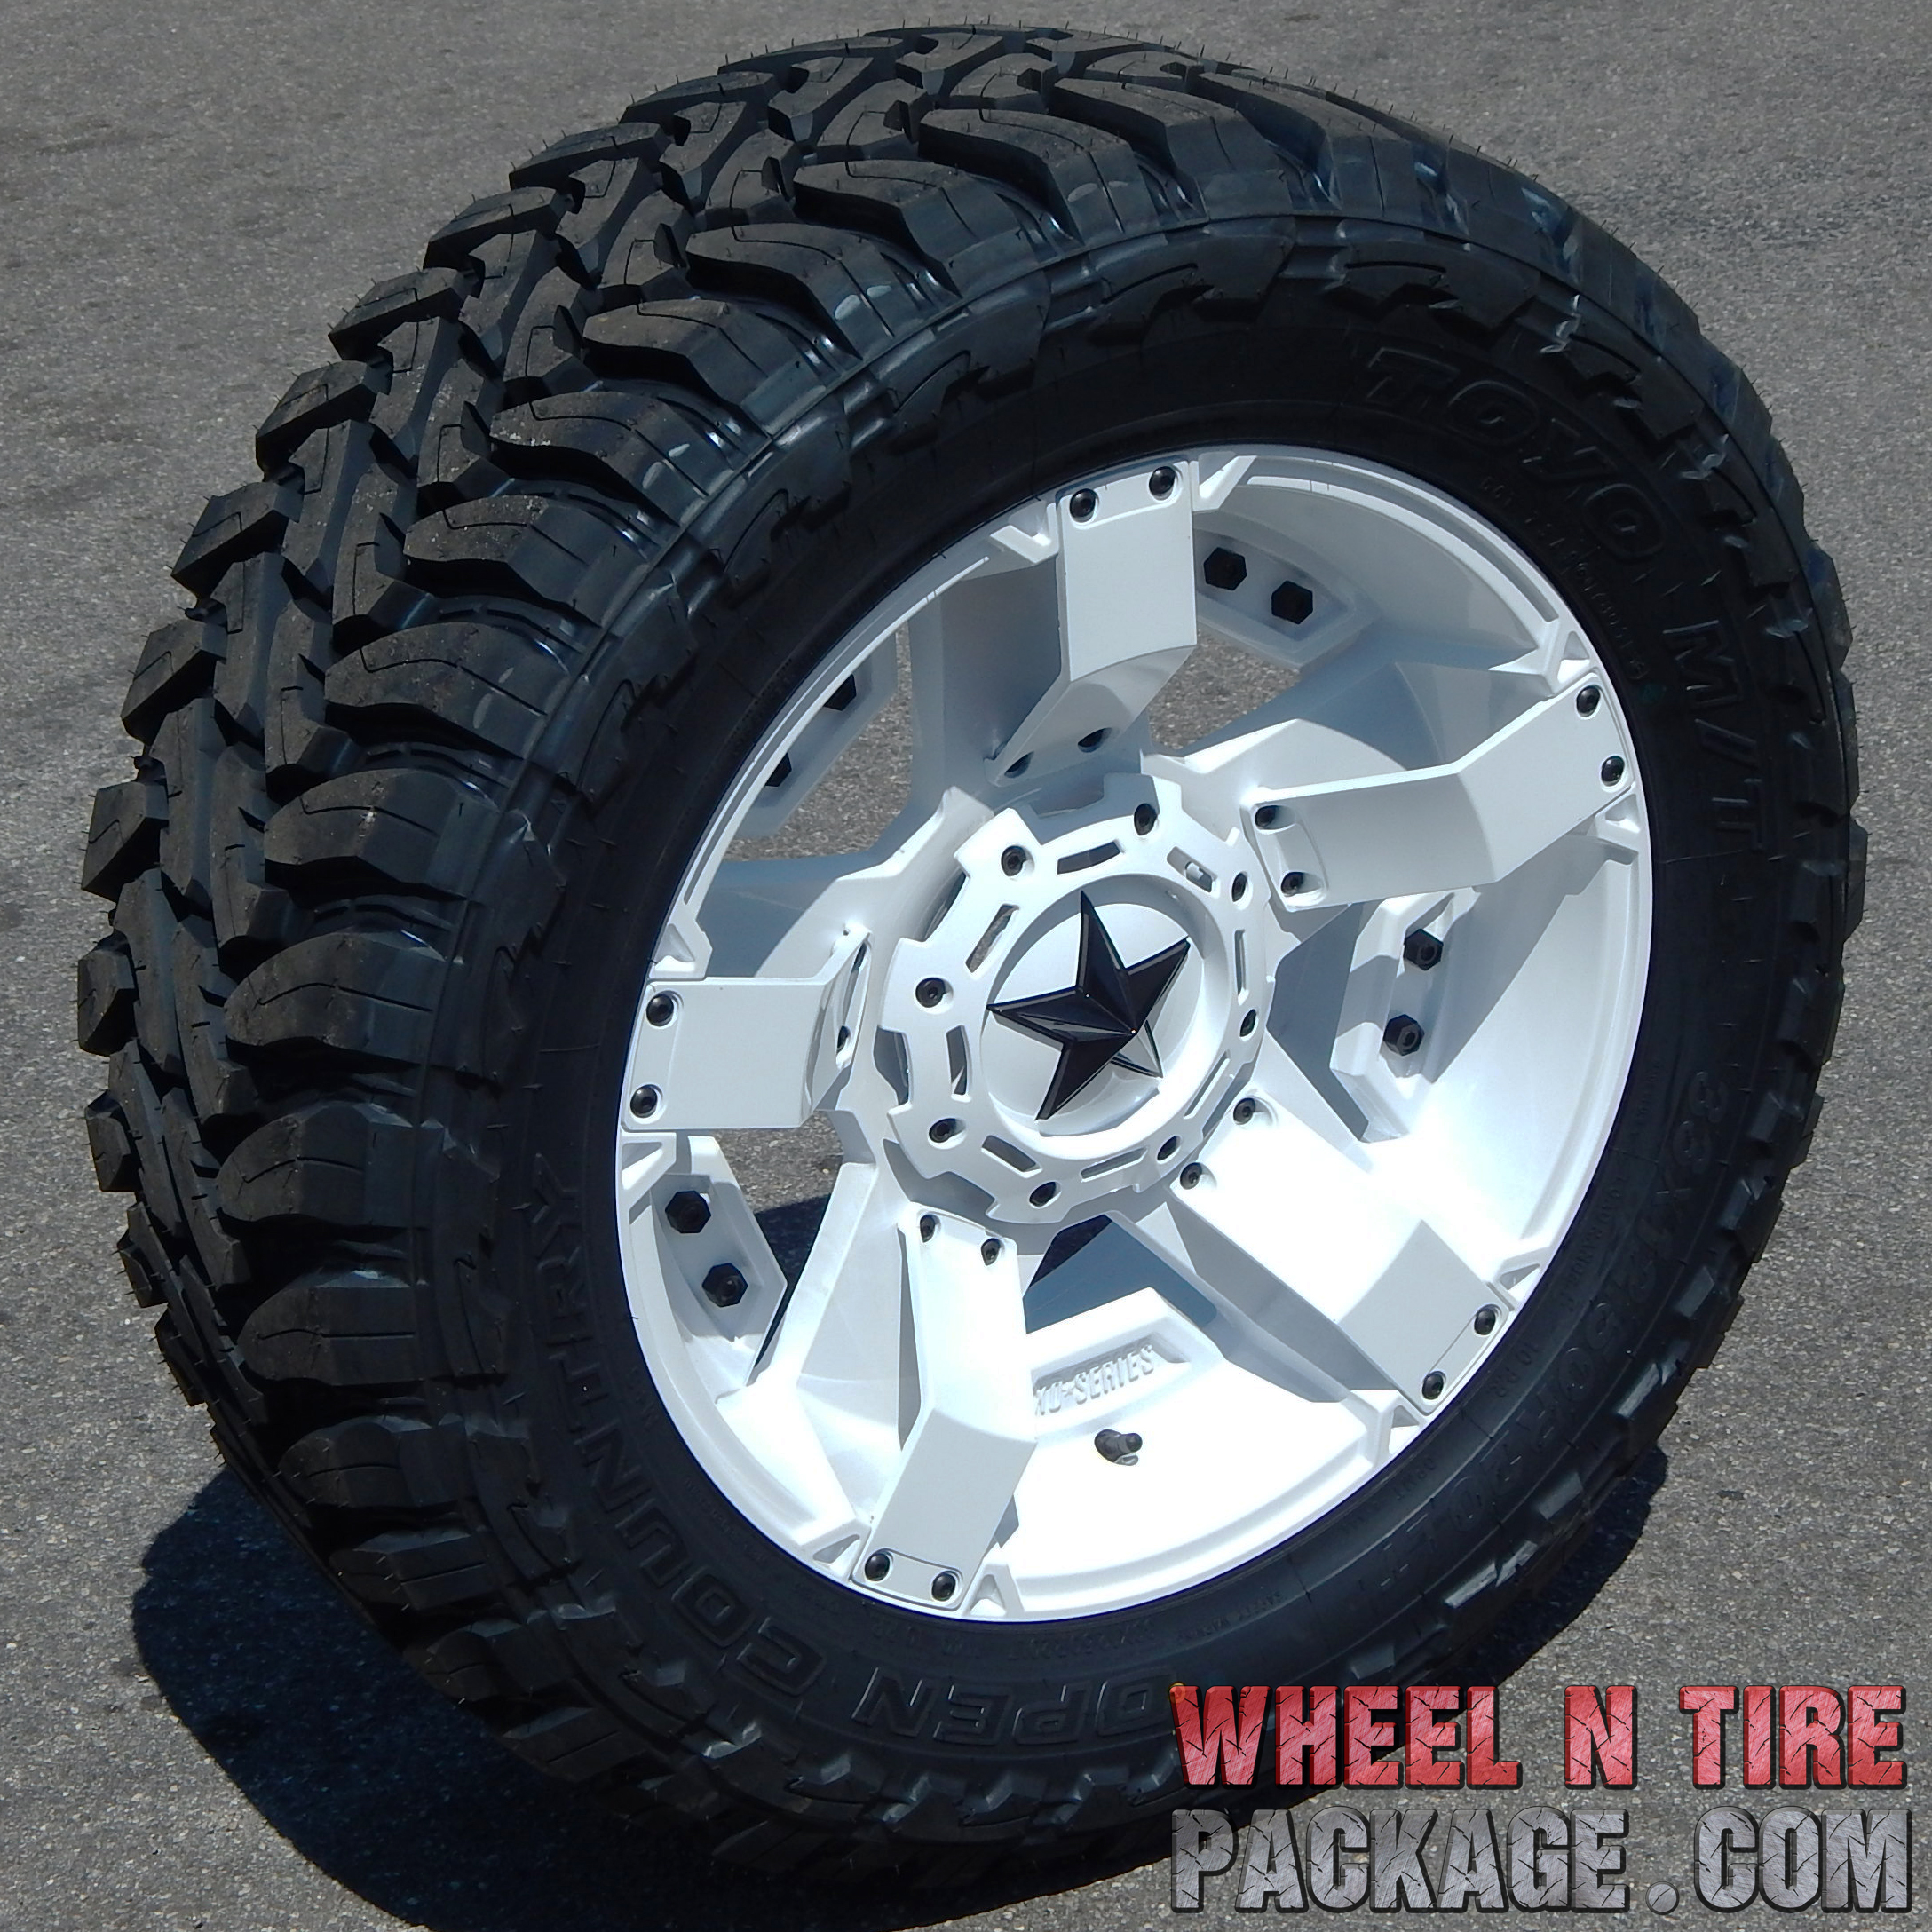 33 Inch Toyo On Ford Oem Rim Upcomingcarshq Com